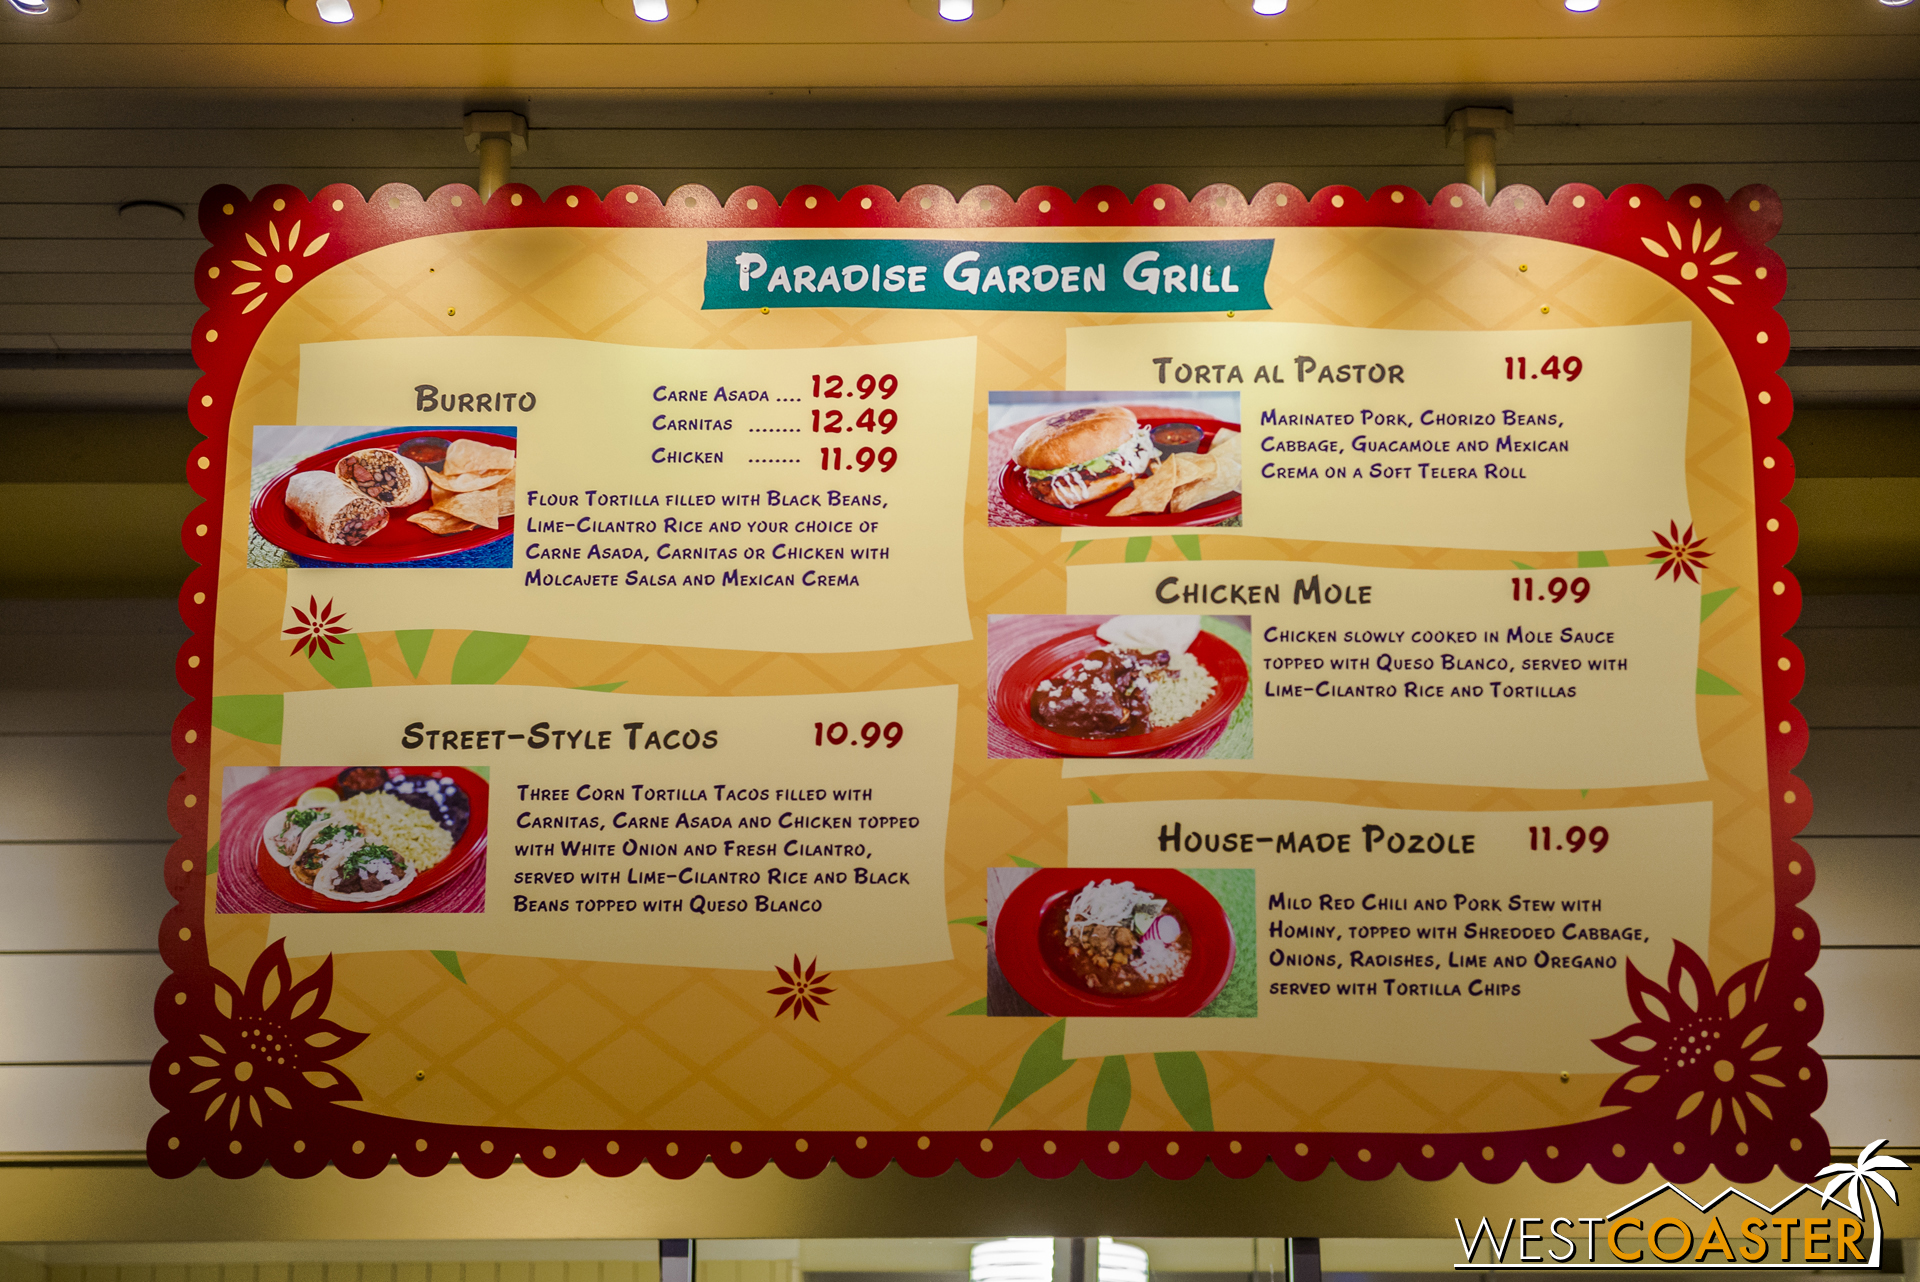 The Garden Grill has a Mexican menu instead of a Mediterranean one still.